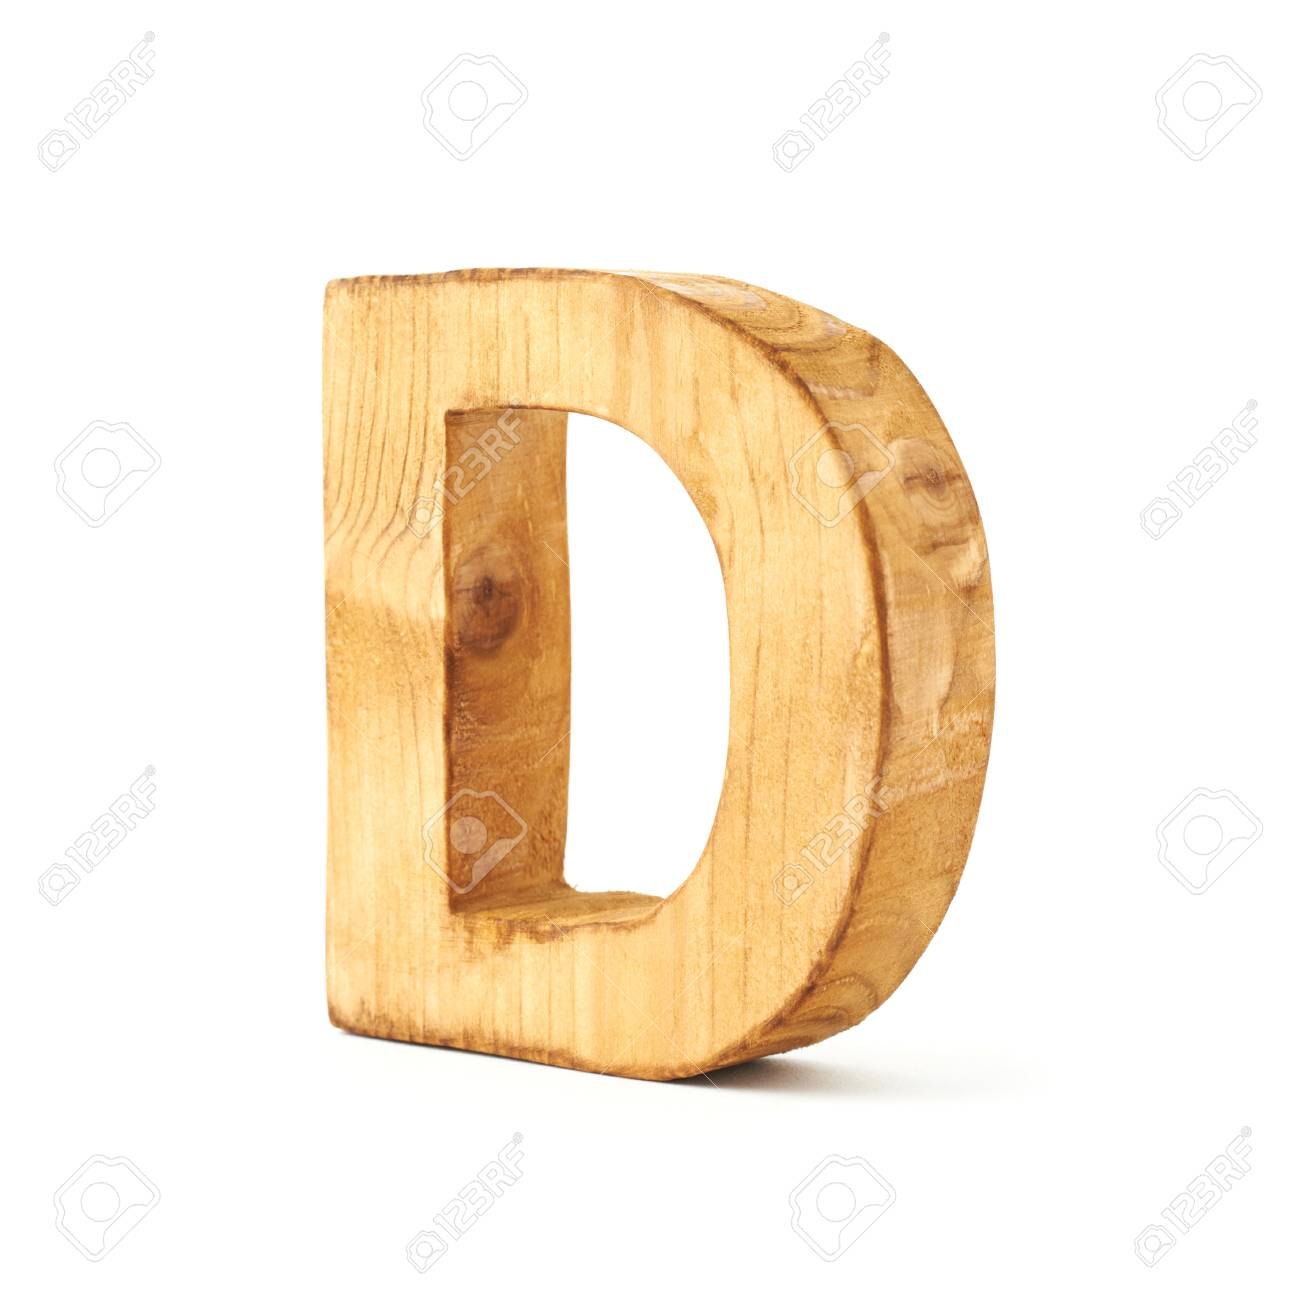 Single Capital Block Wooden Letter D Isolated Over The White